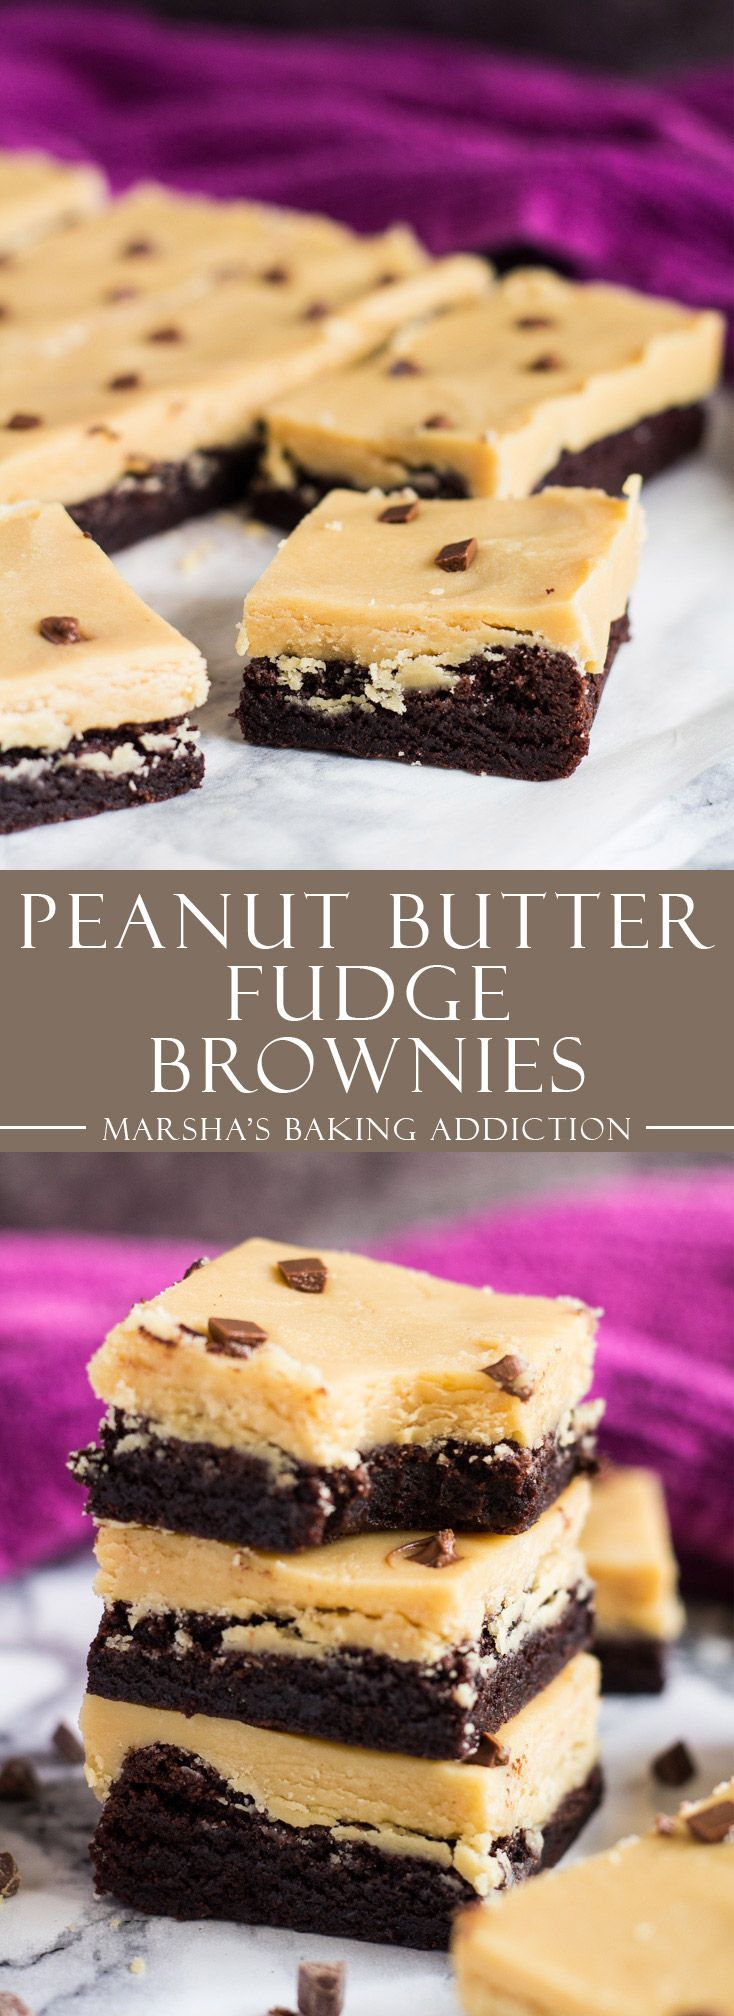 Peanut Butter Fudge Brownies | http://marshasbakingaddiction.com /marshasbakeblog/